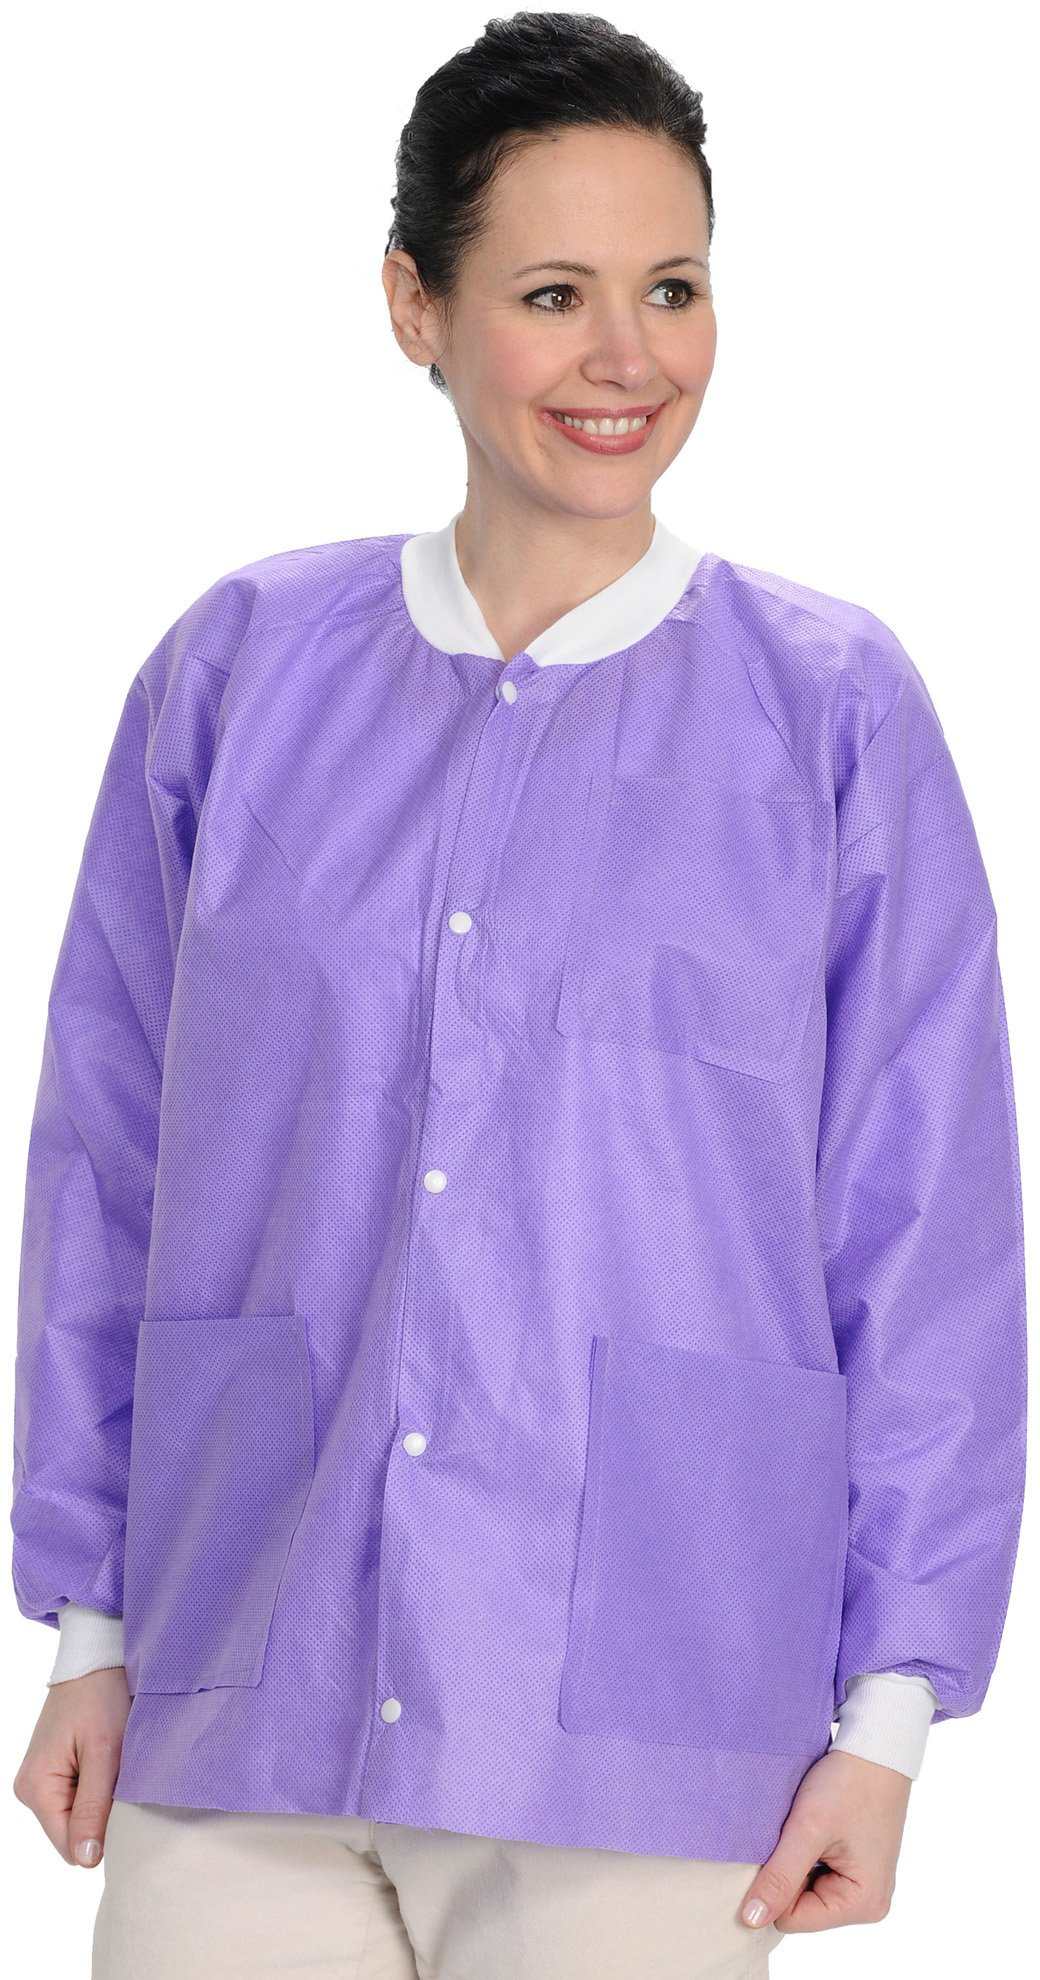 ValuMax 3530PPM Easy Breathe Cool and Strong, No-Wrinkle, Professional Disposable SMS Hip Length Jacket, Purple, M, Pack of 10